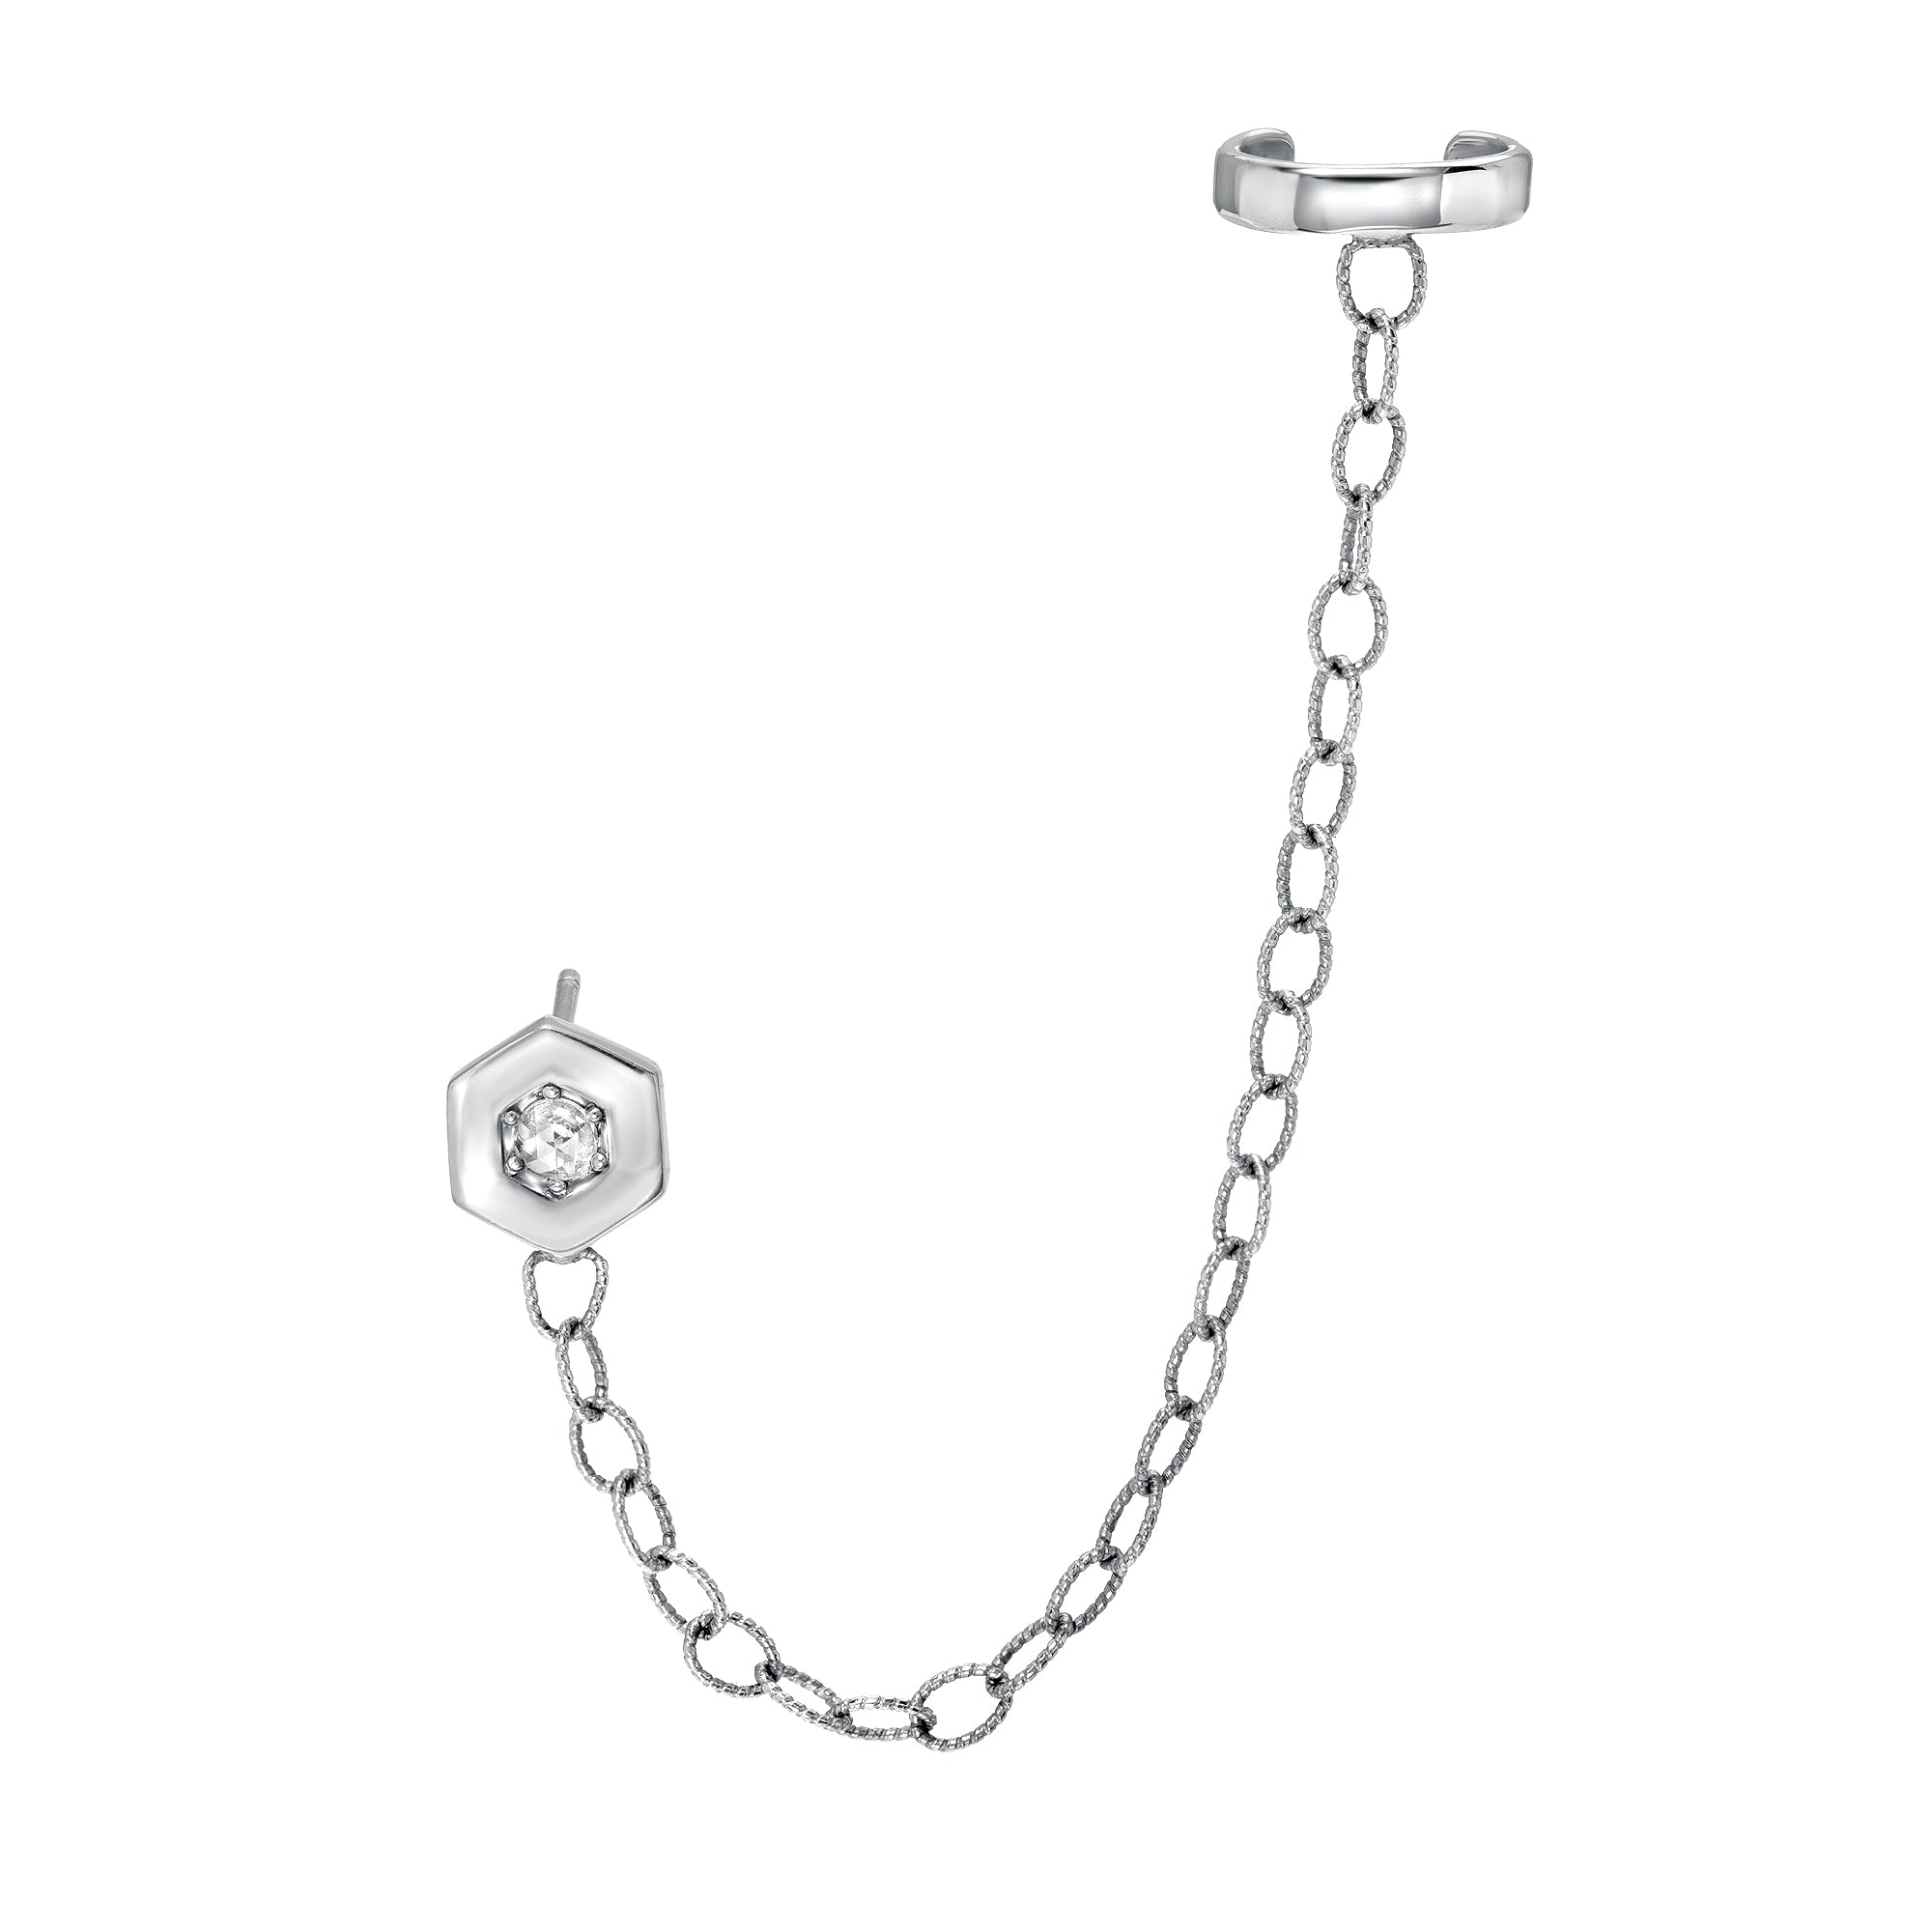 Hexagon Chain Cuff